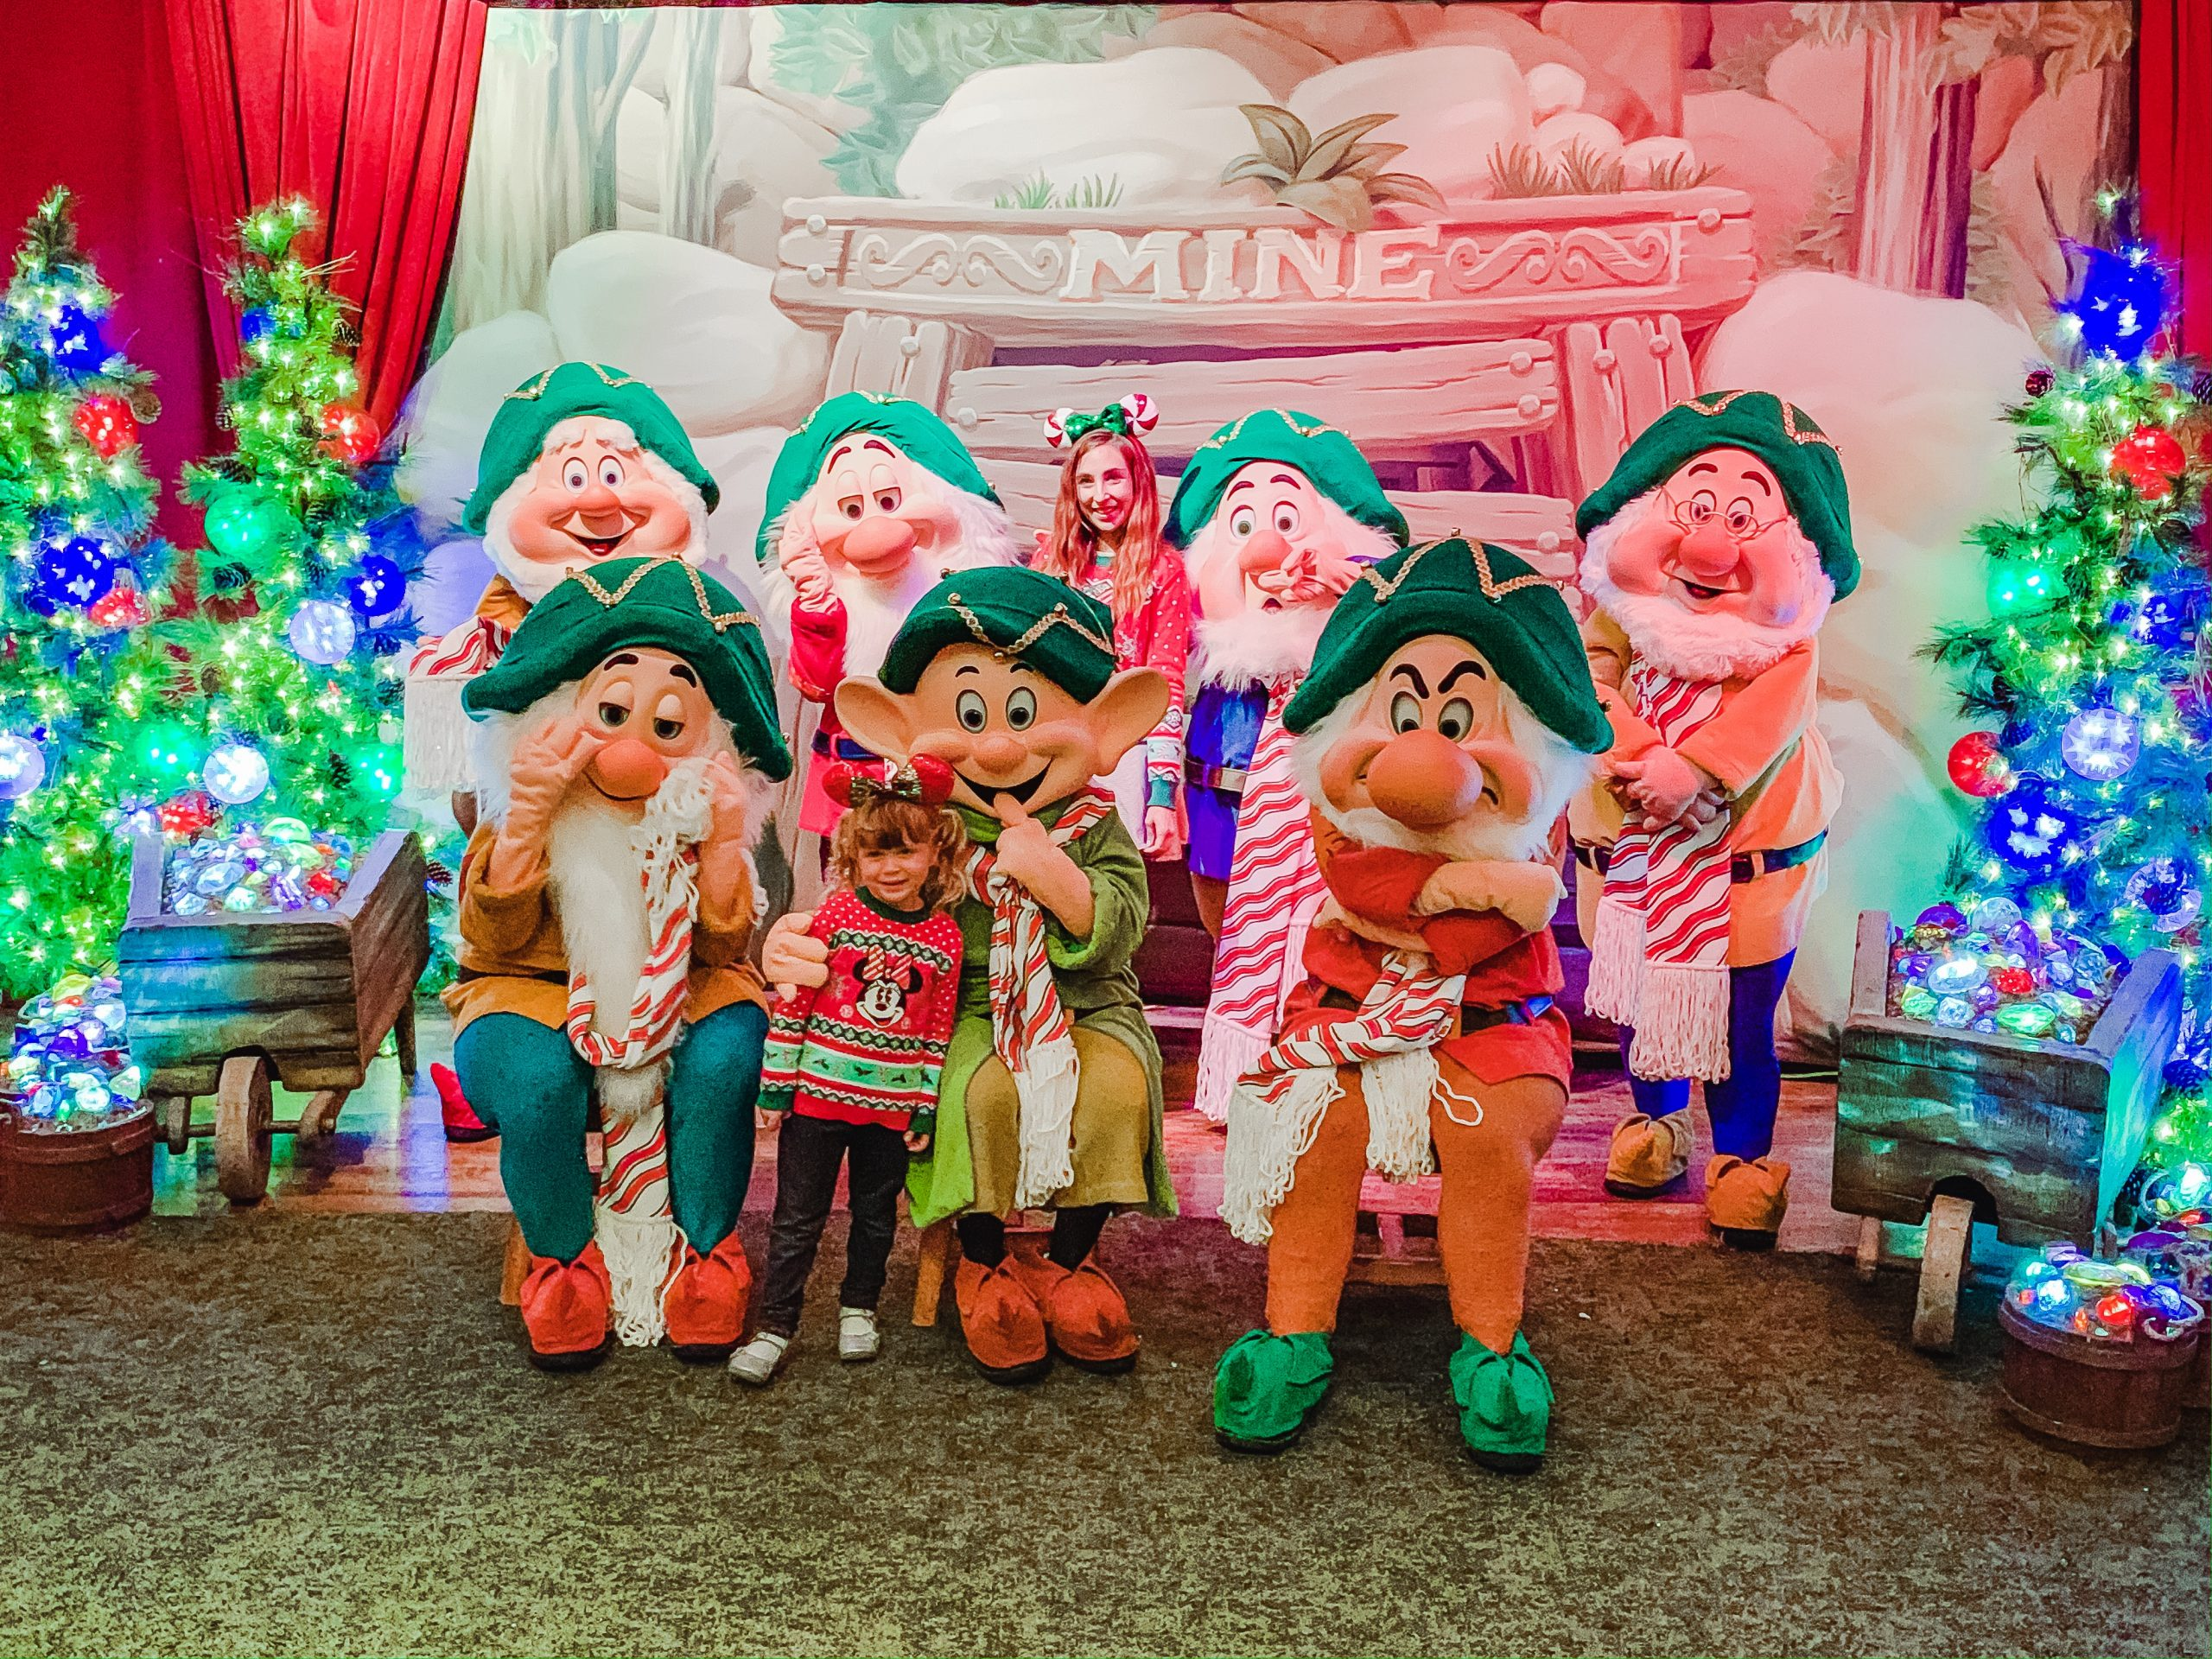 Mickeys Merry Christmas Party 2020 Everything You Need to Know About Mickey's Very Merry Christmas Party